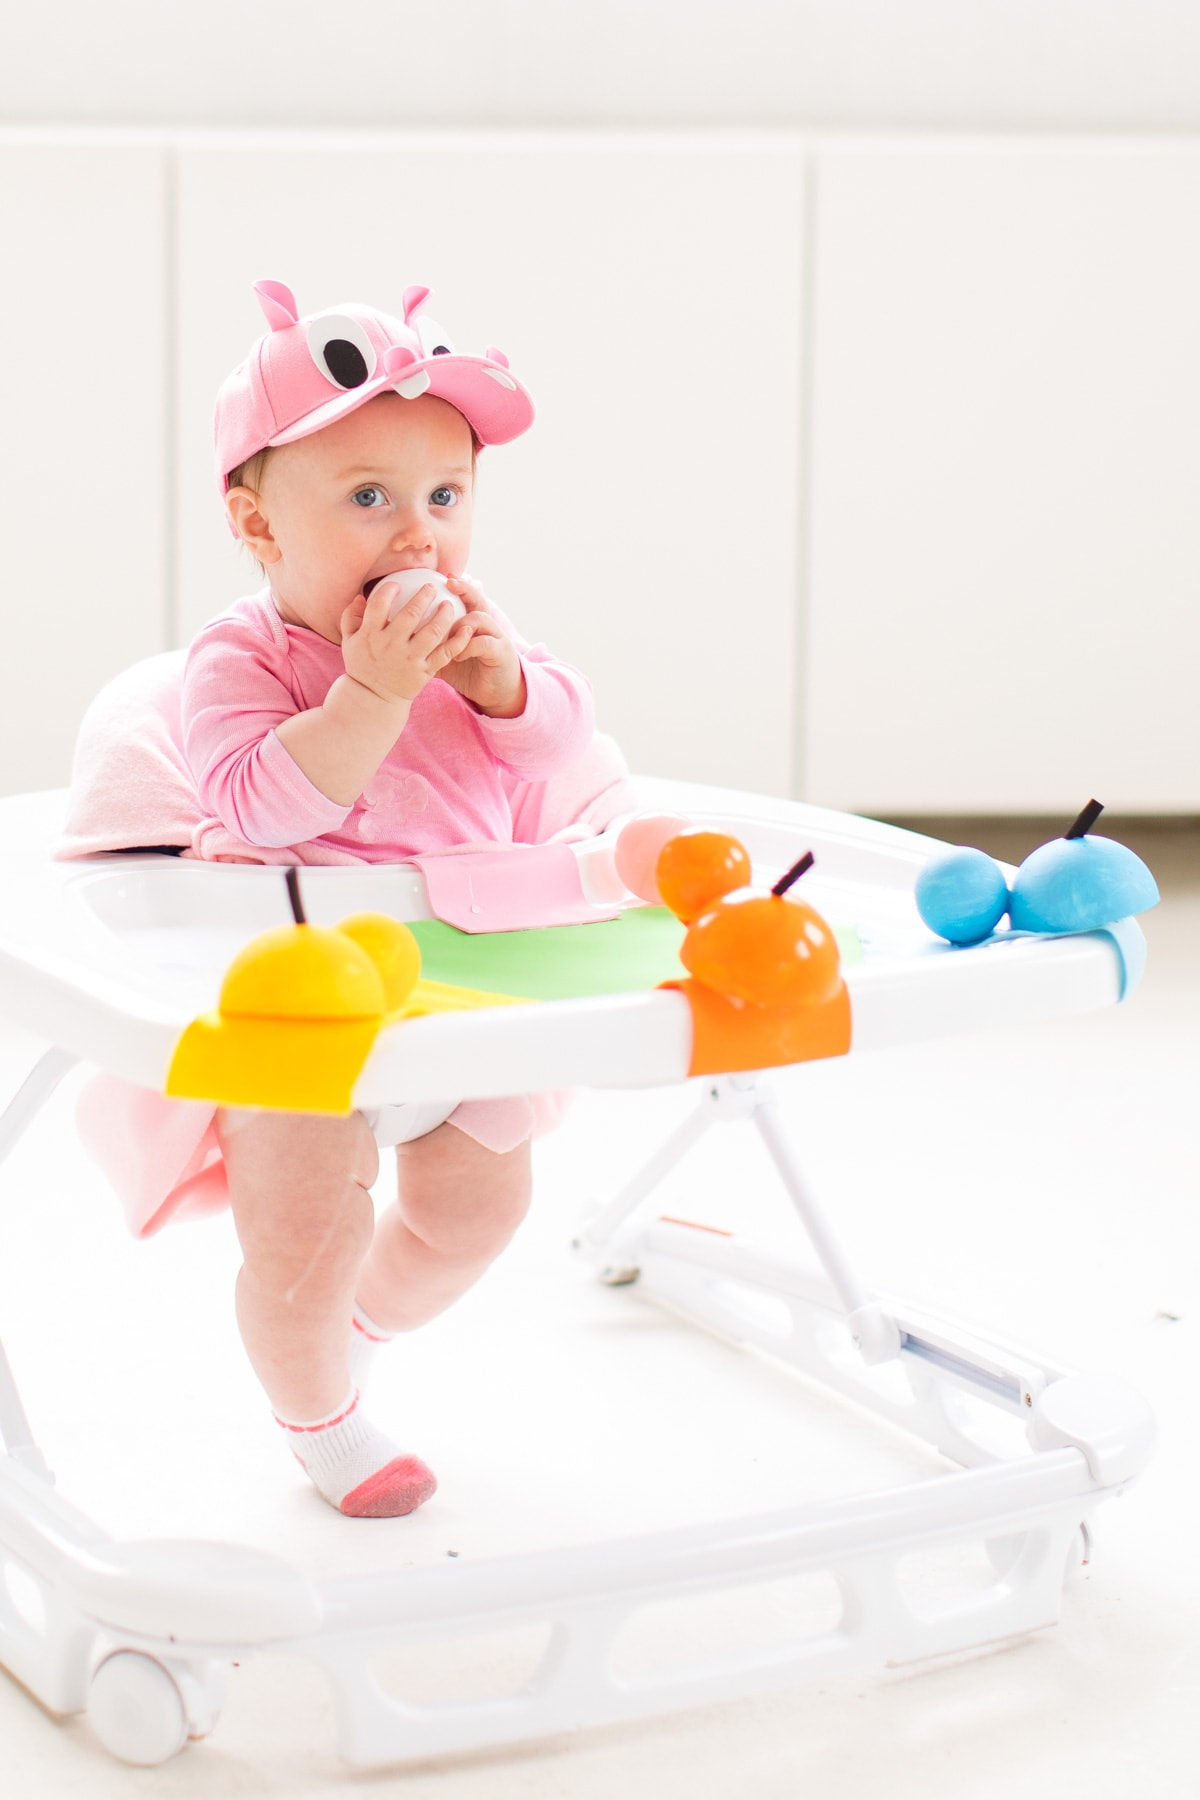 and of course we had to turn her walker into the hippo game! -- loading up the crazy amount of baby gear! Our Family DIY Hungry Hippos Costume Idea -- by Top Houston blogger Ashley Rose of Sugar and Cloth -- #costumes #halloween #ideas #family #familycostume #diy